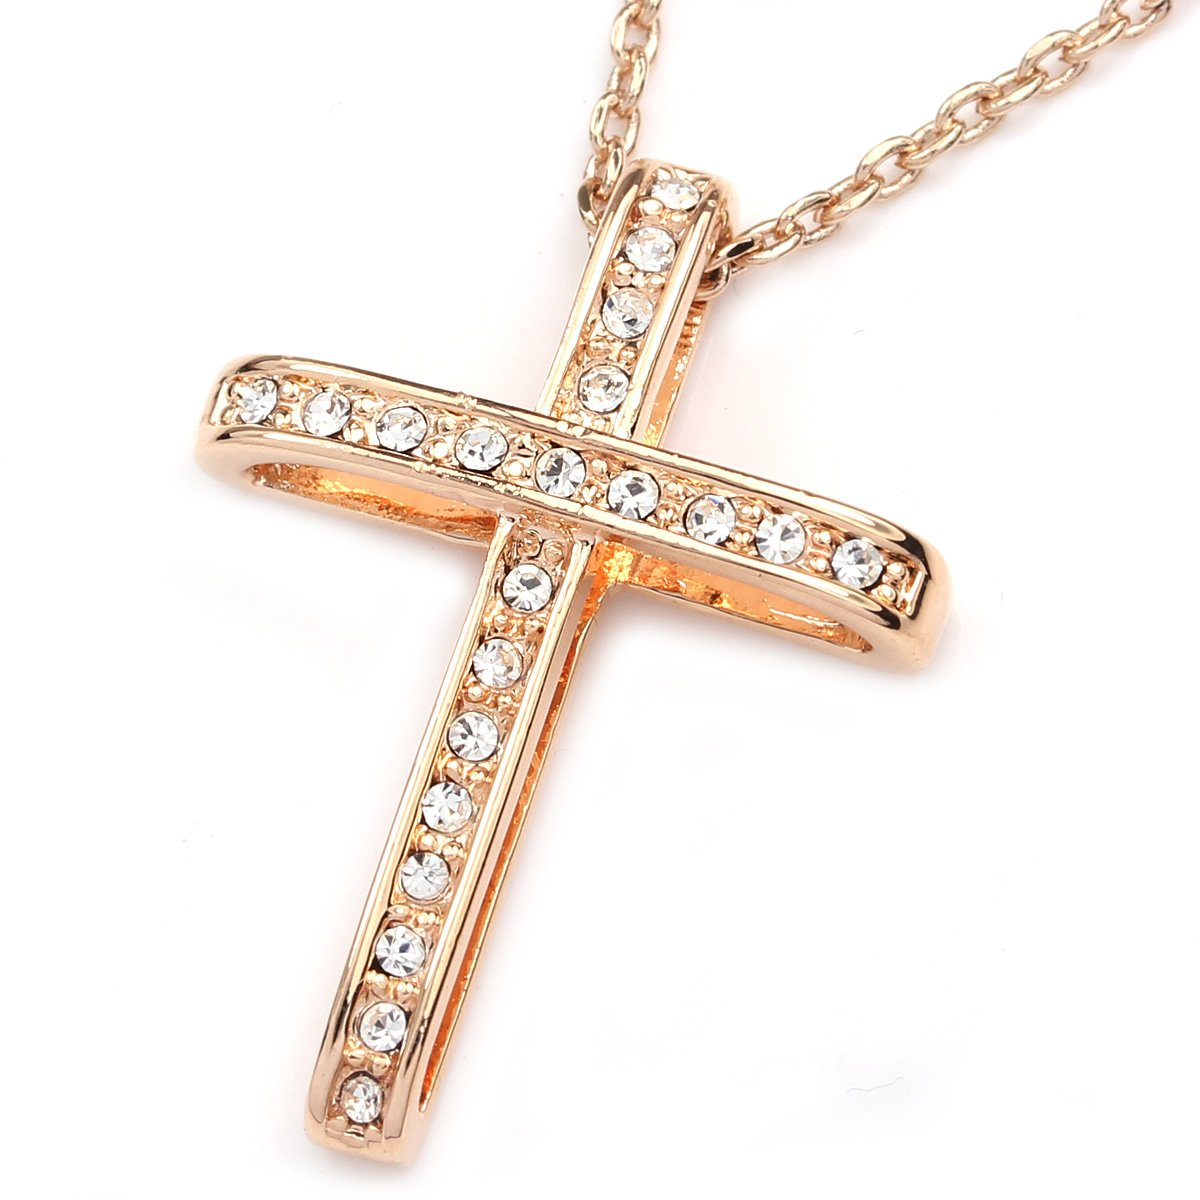 FC JORY White & Rose Gold Plated Rhinestone Cross Cubic Zirconia Pendant Necklace Fancy Collection T454